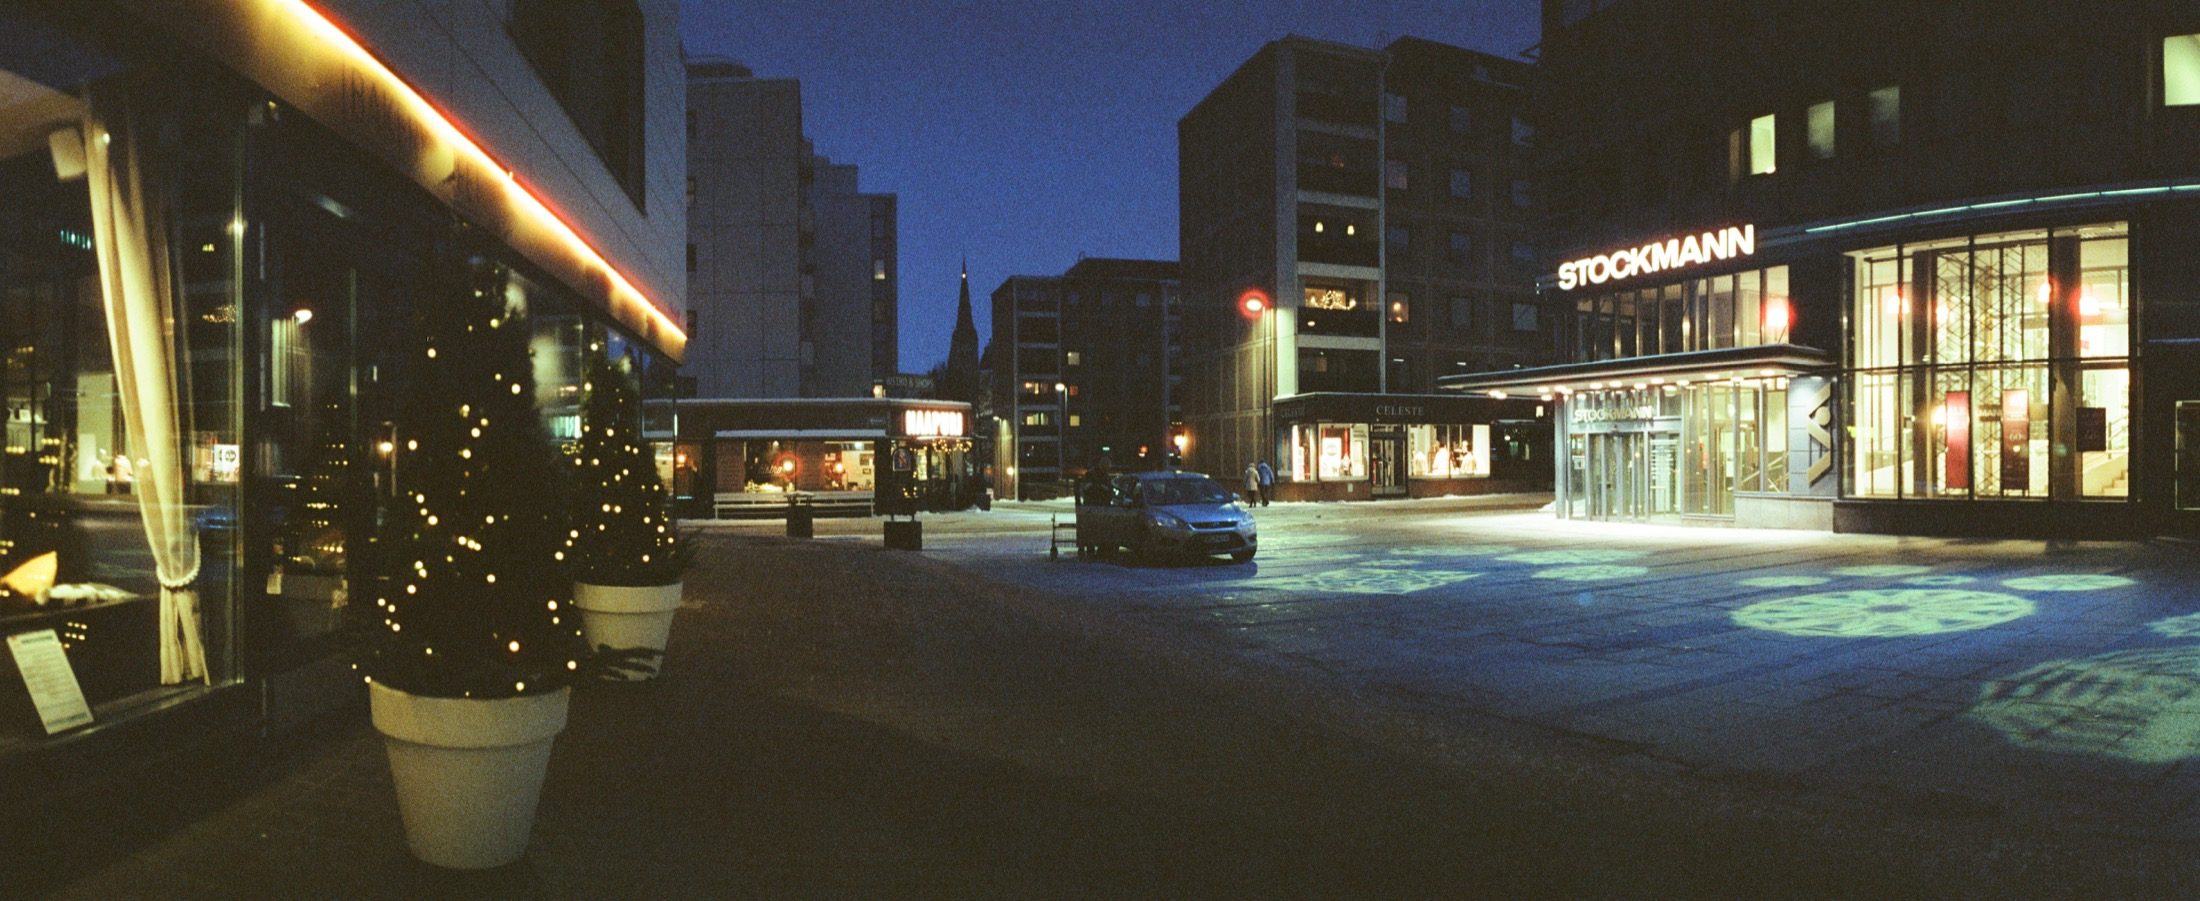 cameraville_horizon_202_panoramic_35mm_tampere_cineStill800_5.jpg